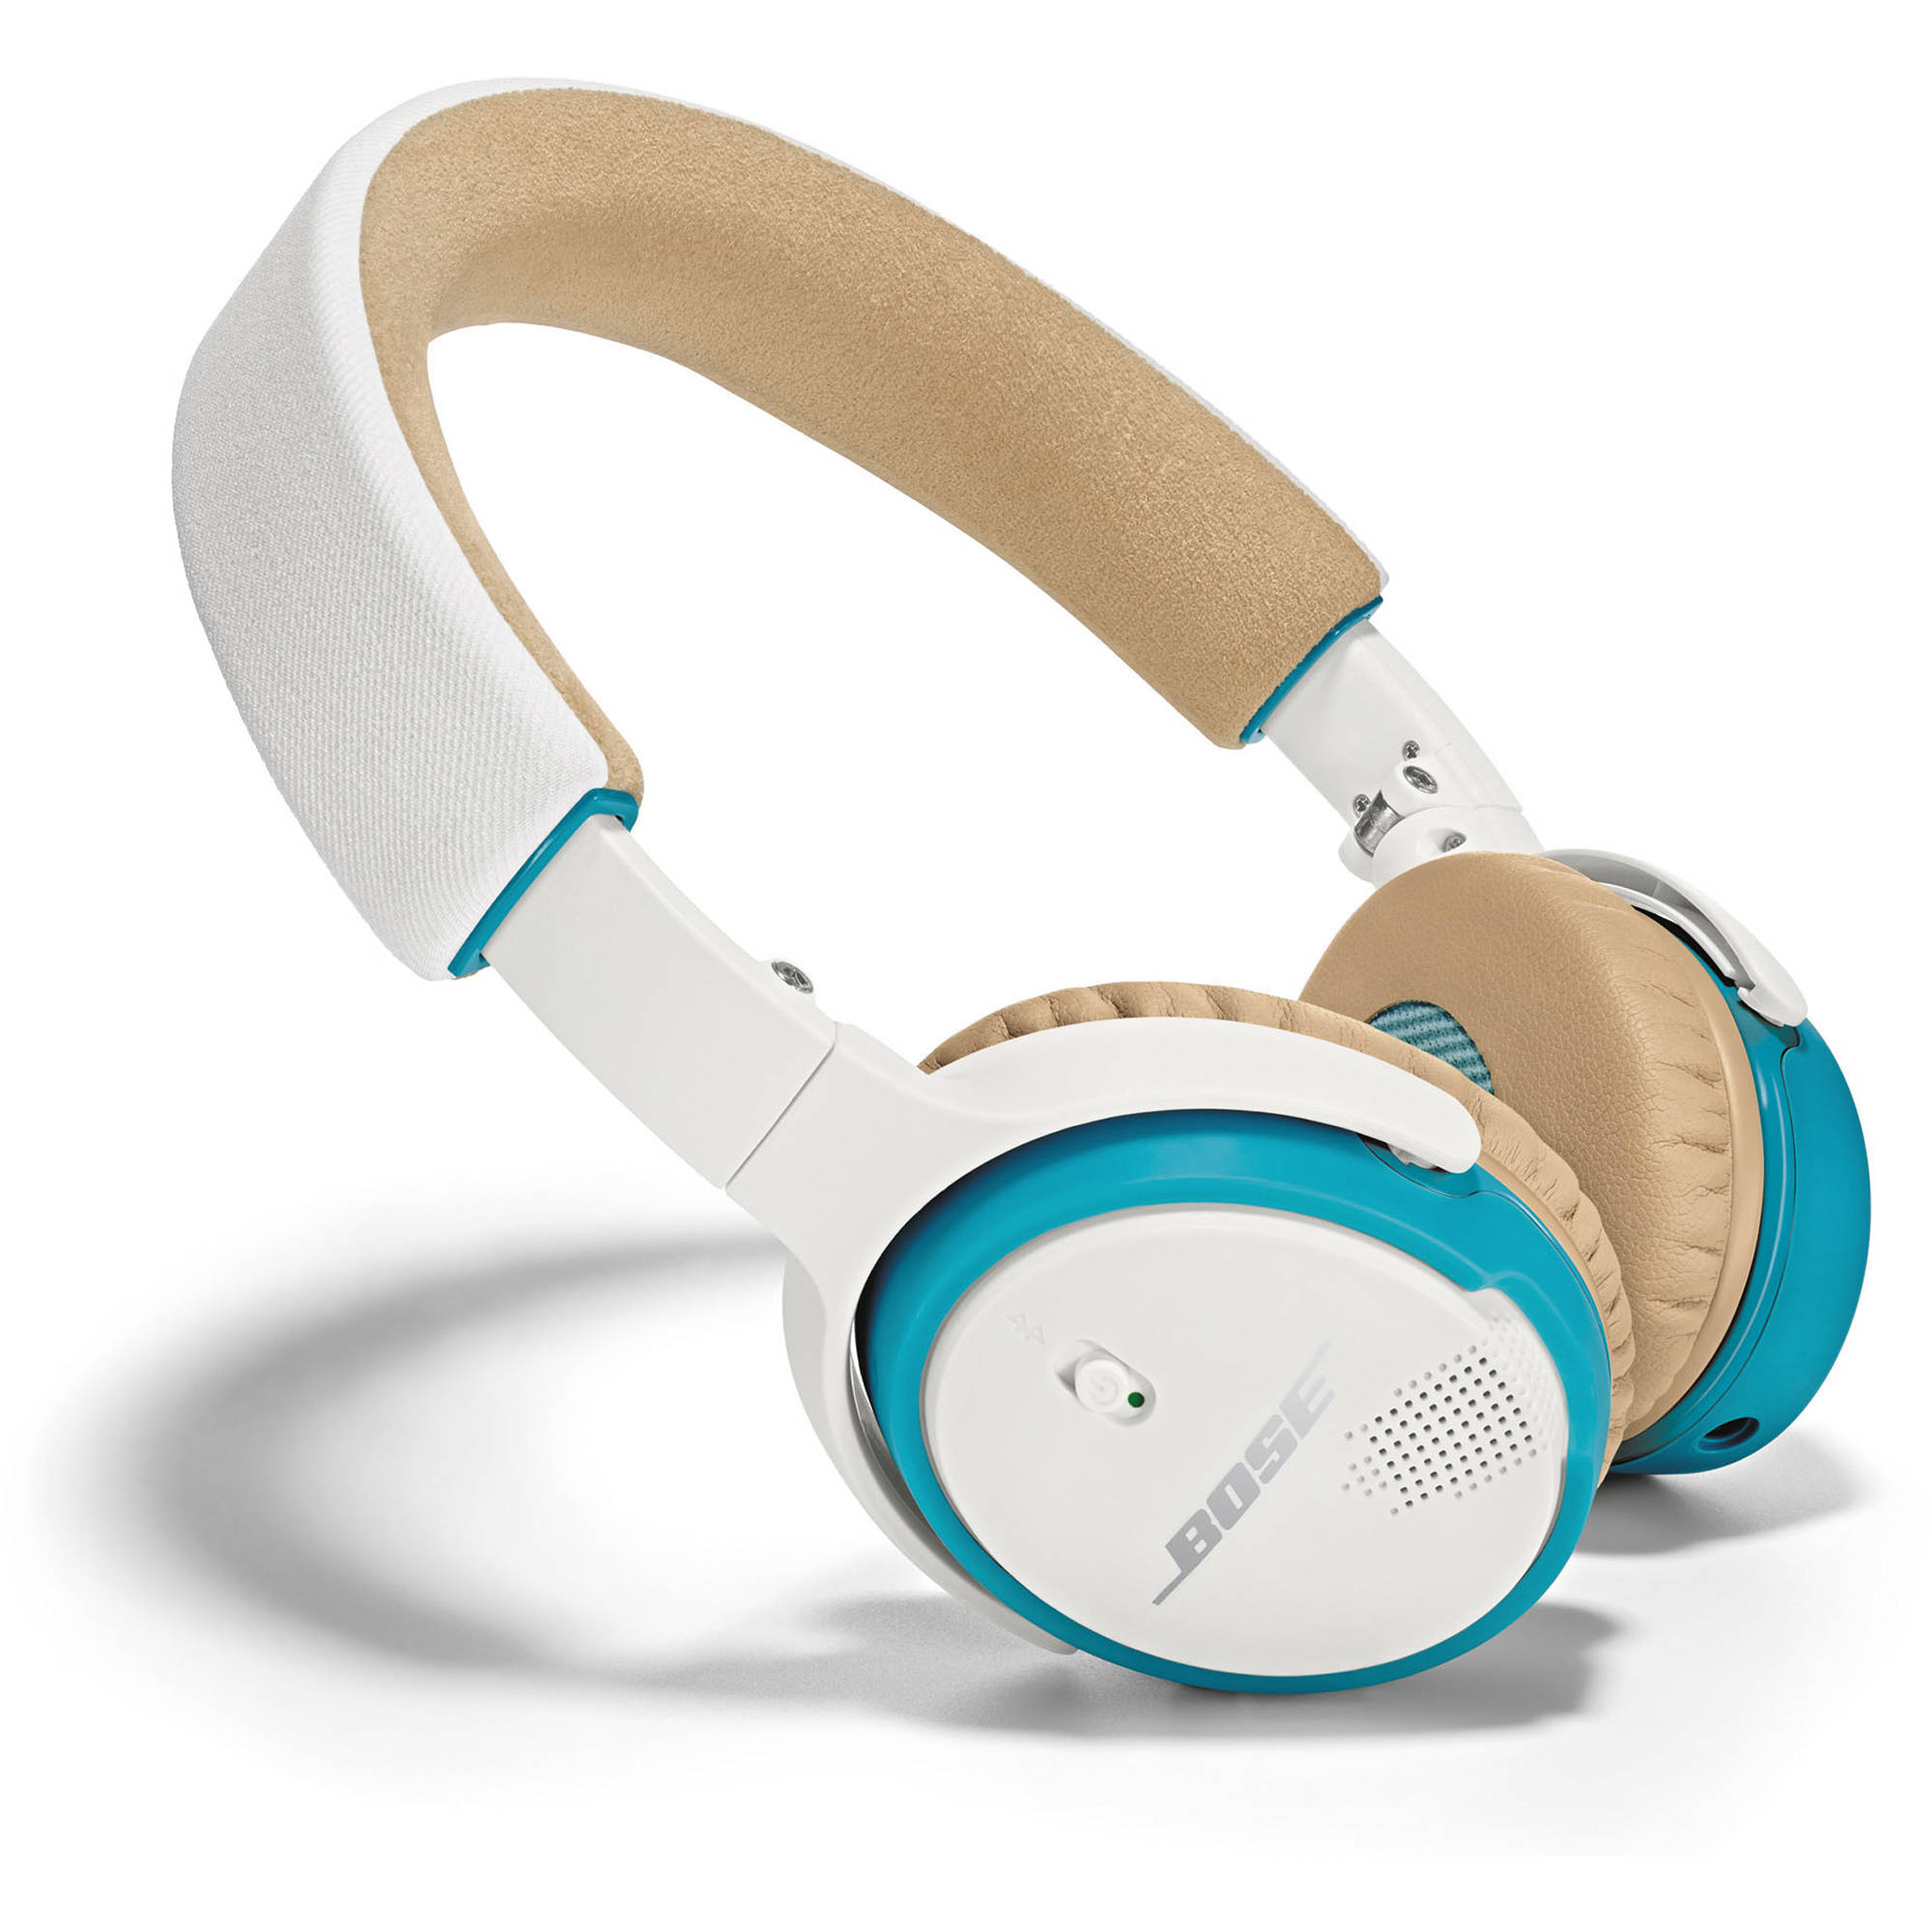 Bose SoundLink On-Ear Bluetooth Headphones (White and Blue)